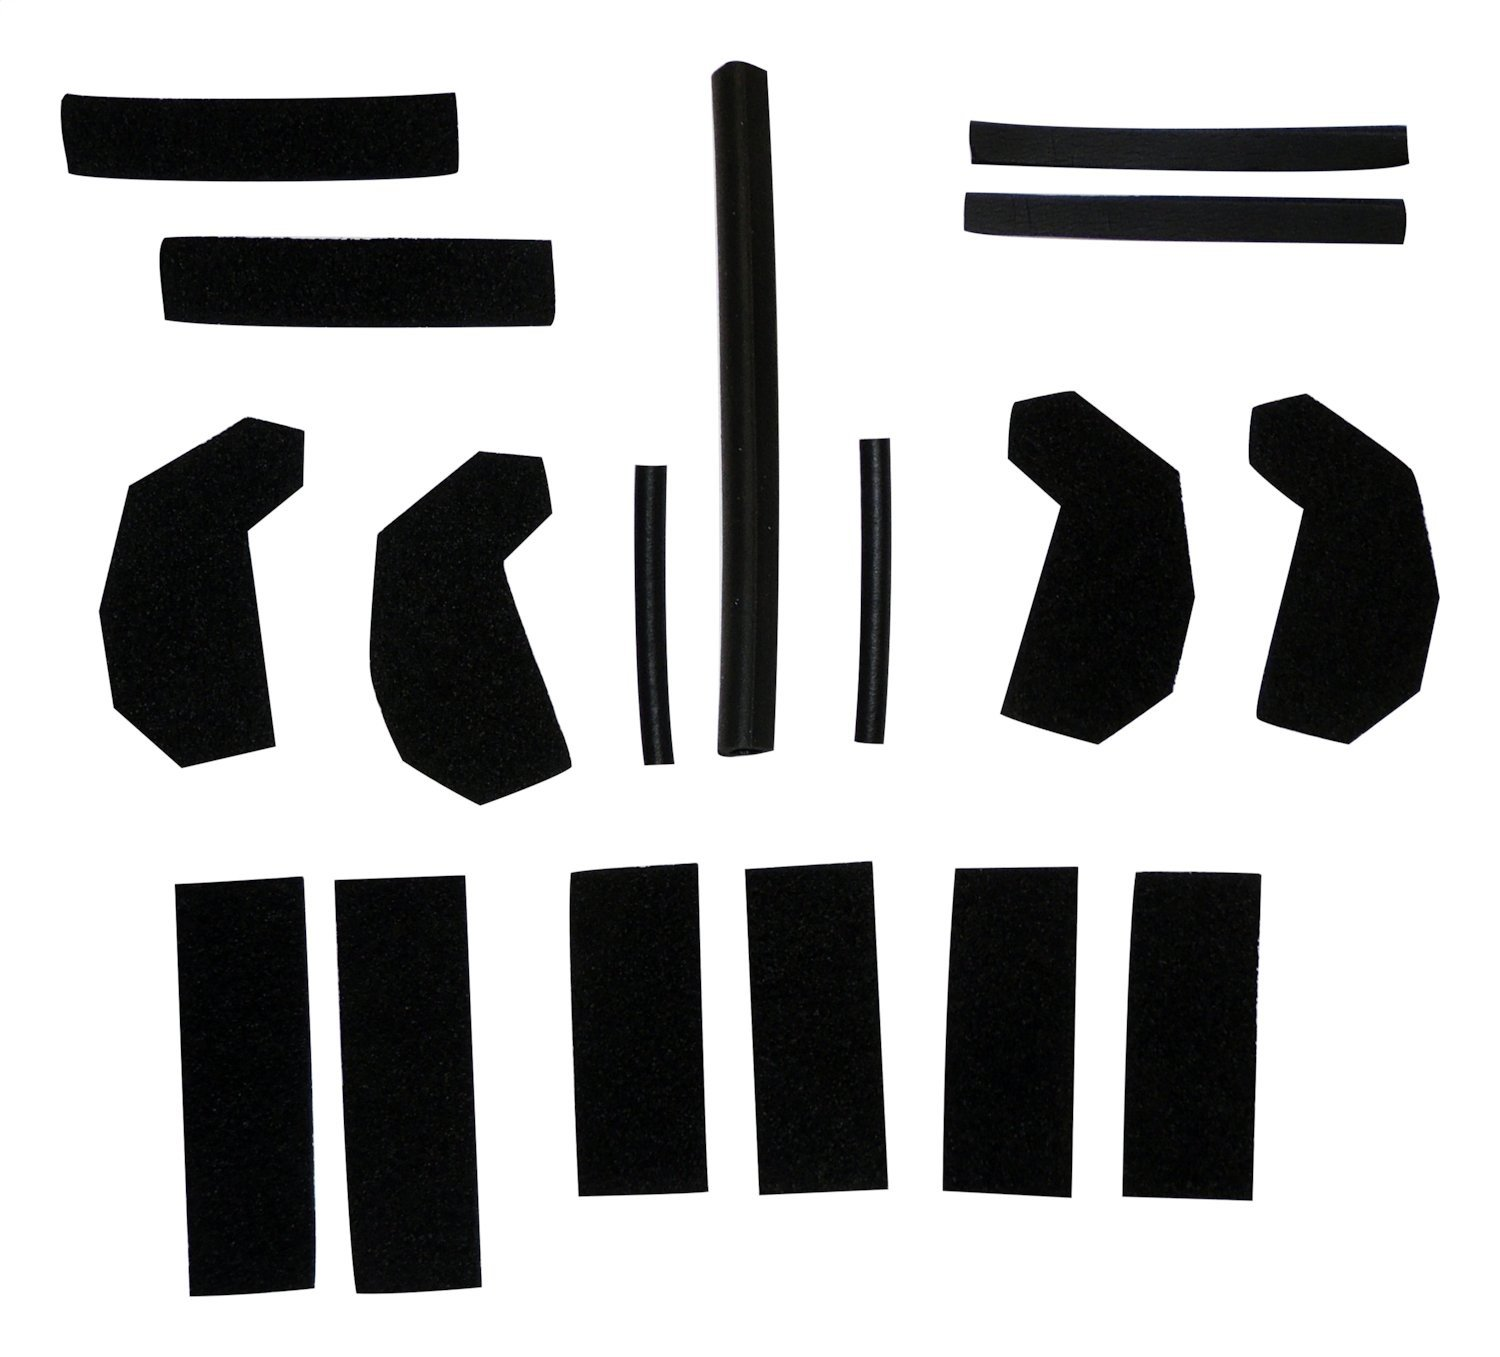 Crown Jeep Hard Top Seal Kit Black (w/ Hard Top;Kit Contains Various Seals to Repair Leaks;Used in connection with Mopar TSB #23-001-07 and 23-025-08)